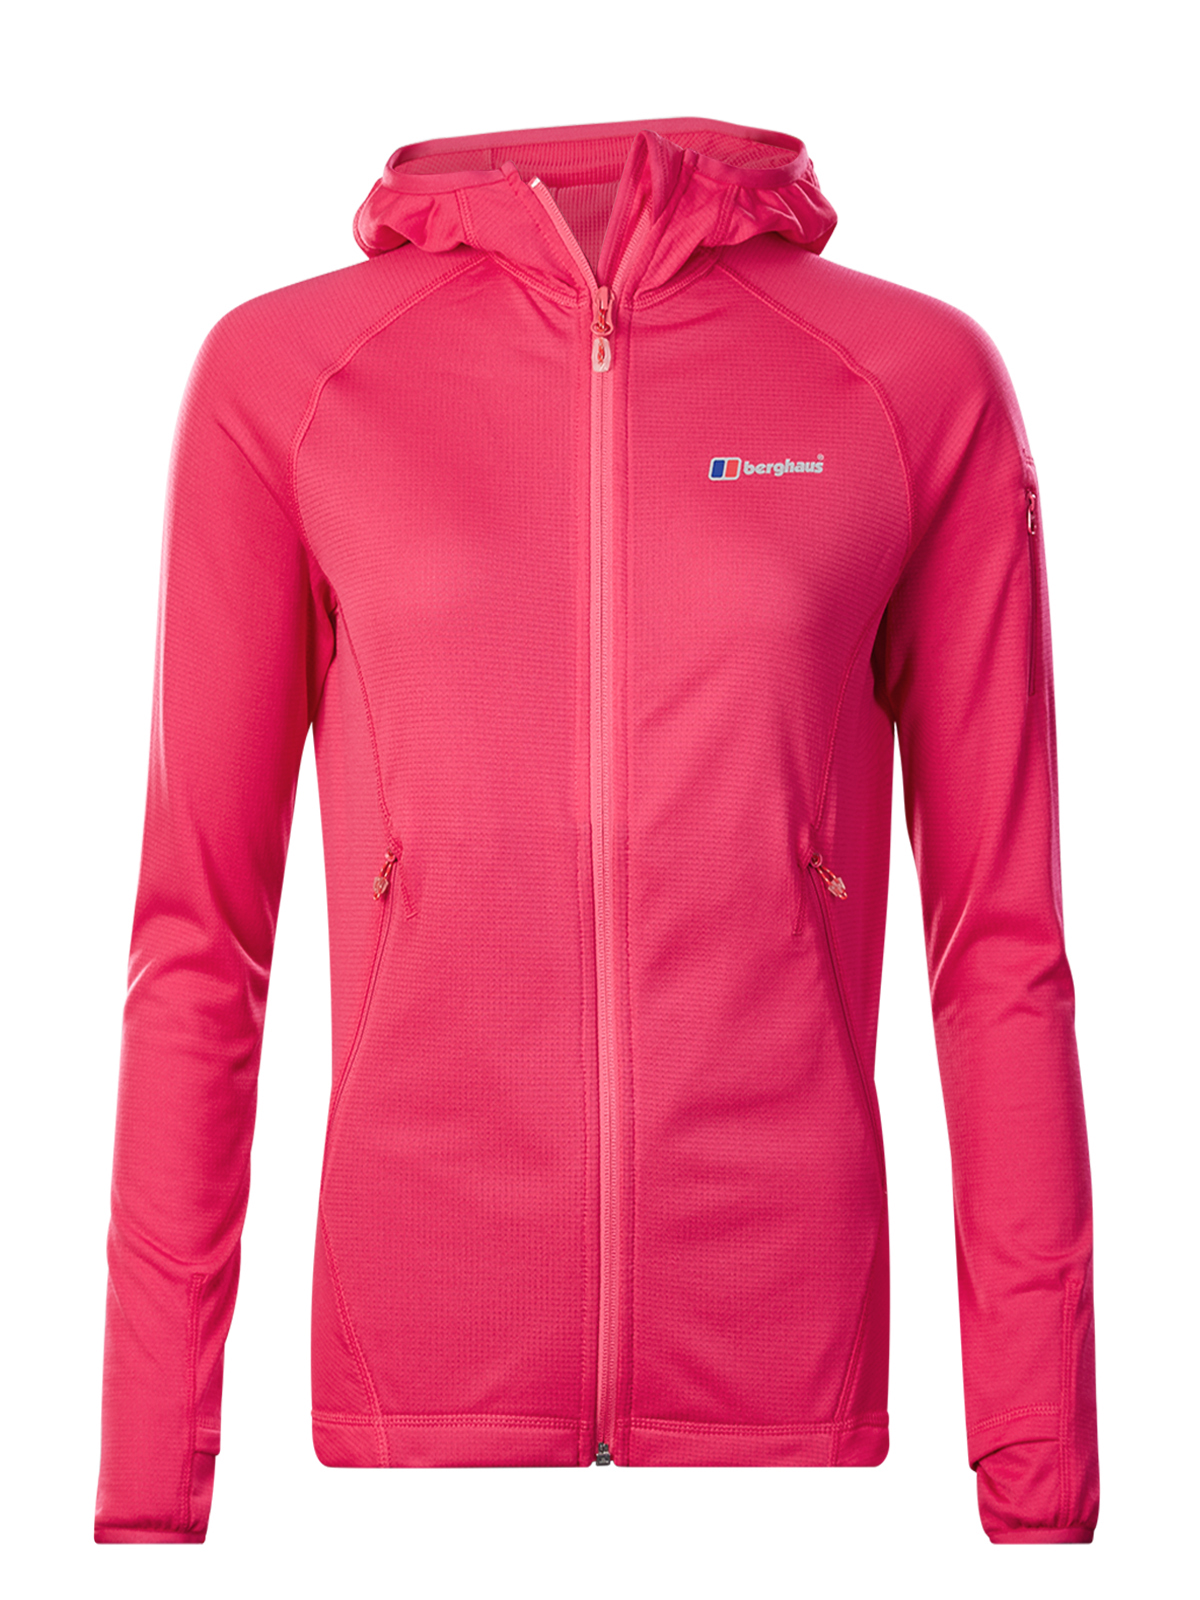 Berghaus Women's Pravitale Light 2.0 | Jerseys